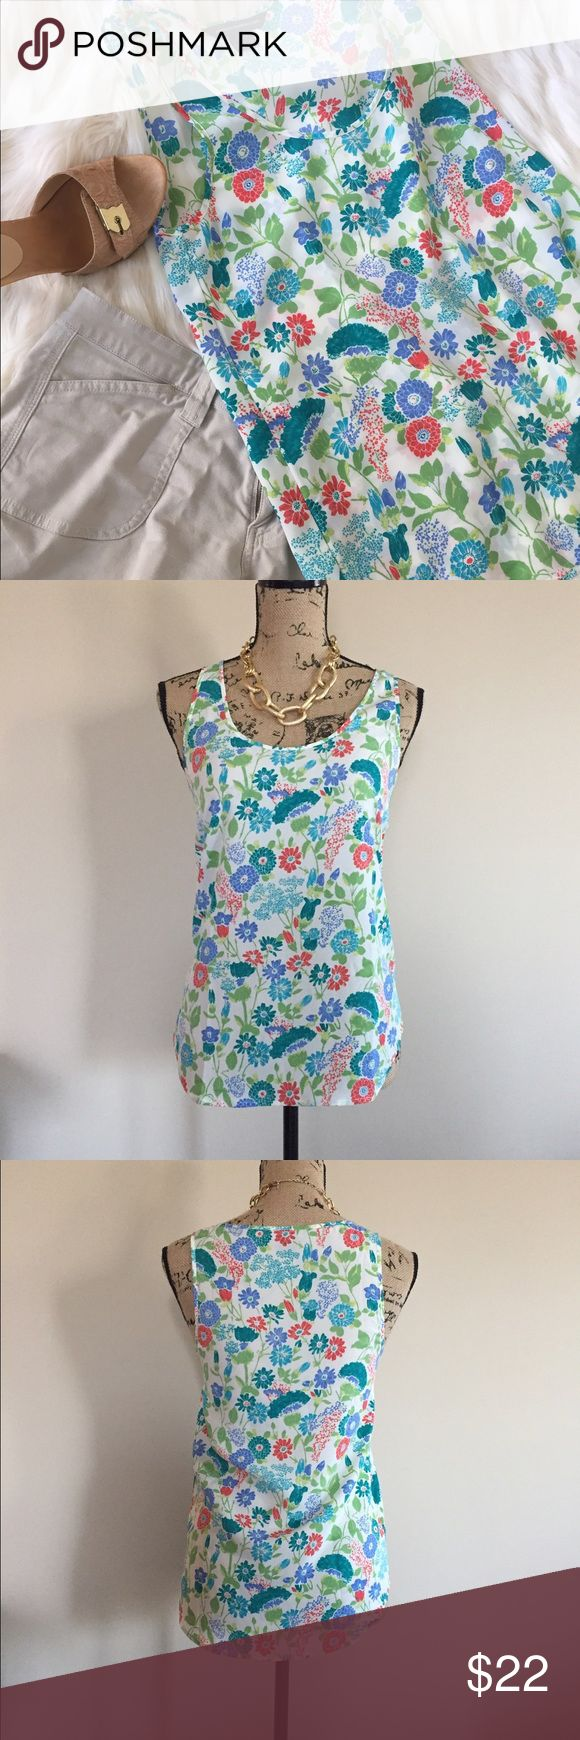 """☀️ French Connection blooming tank ☀️ NWOT Cute silky floral tank from French Connection. Perfect under a blazer to brighten up a work outfit!Scoop neck, round bottom hem. Size 2. 100% polyester. Bust measures 17"""", length 26"""". French Connection Tops Blouses"""